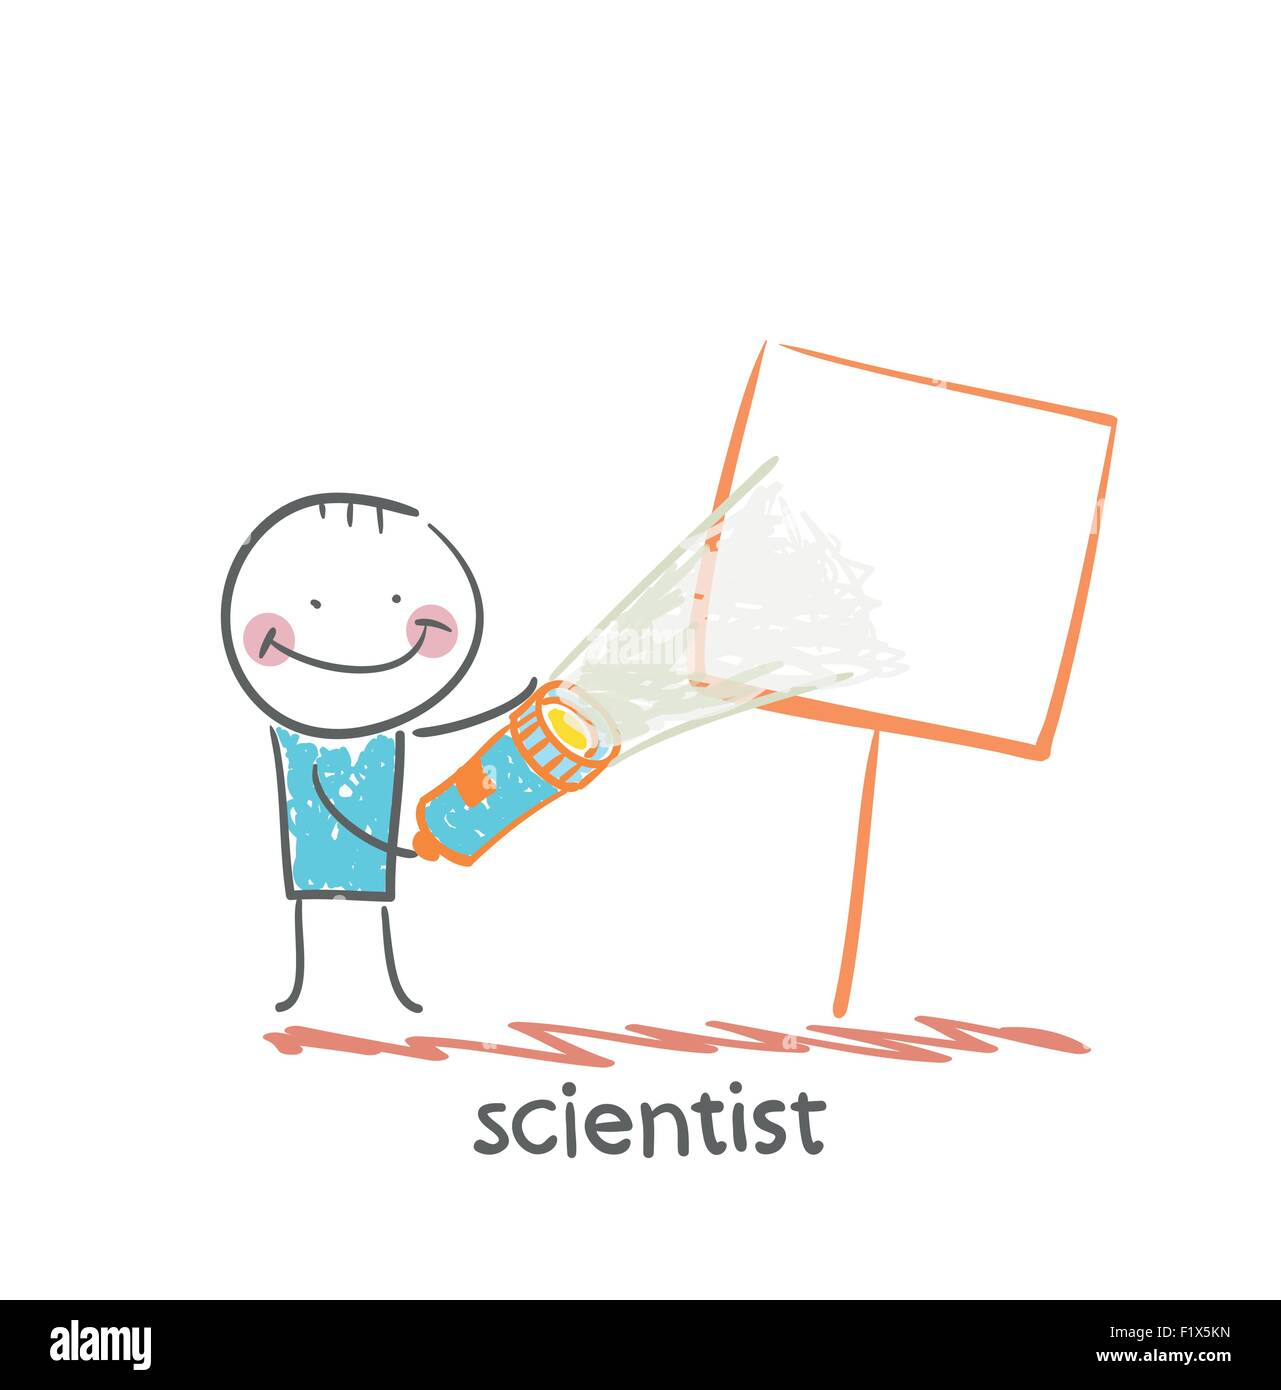 scientist shines a flashlight on a poster - Stock Image